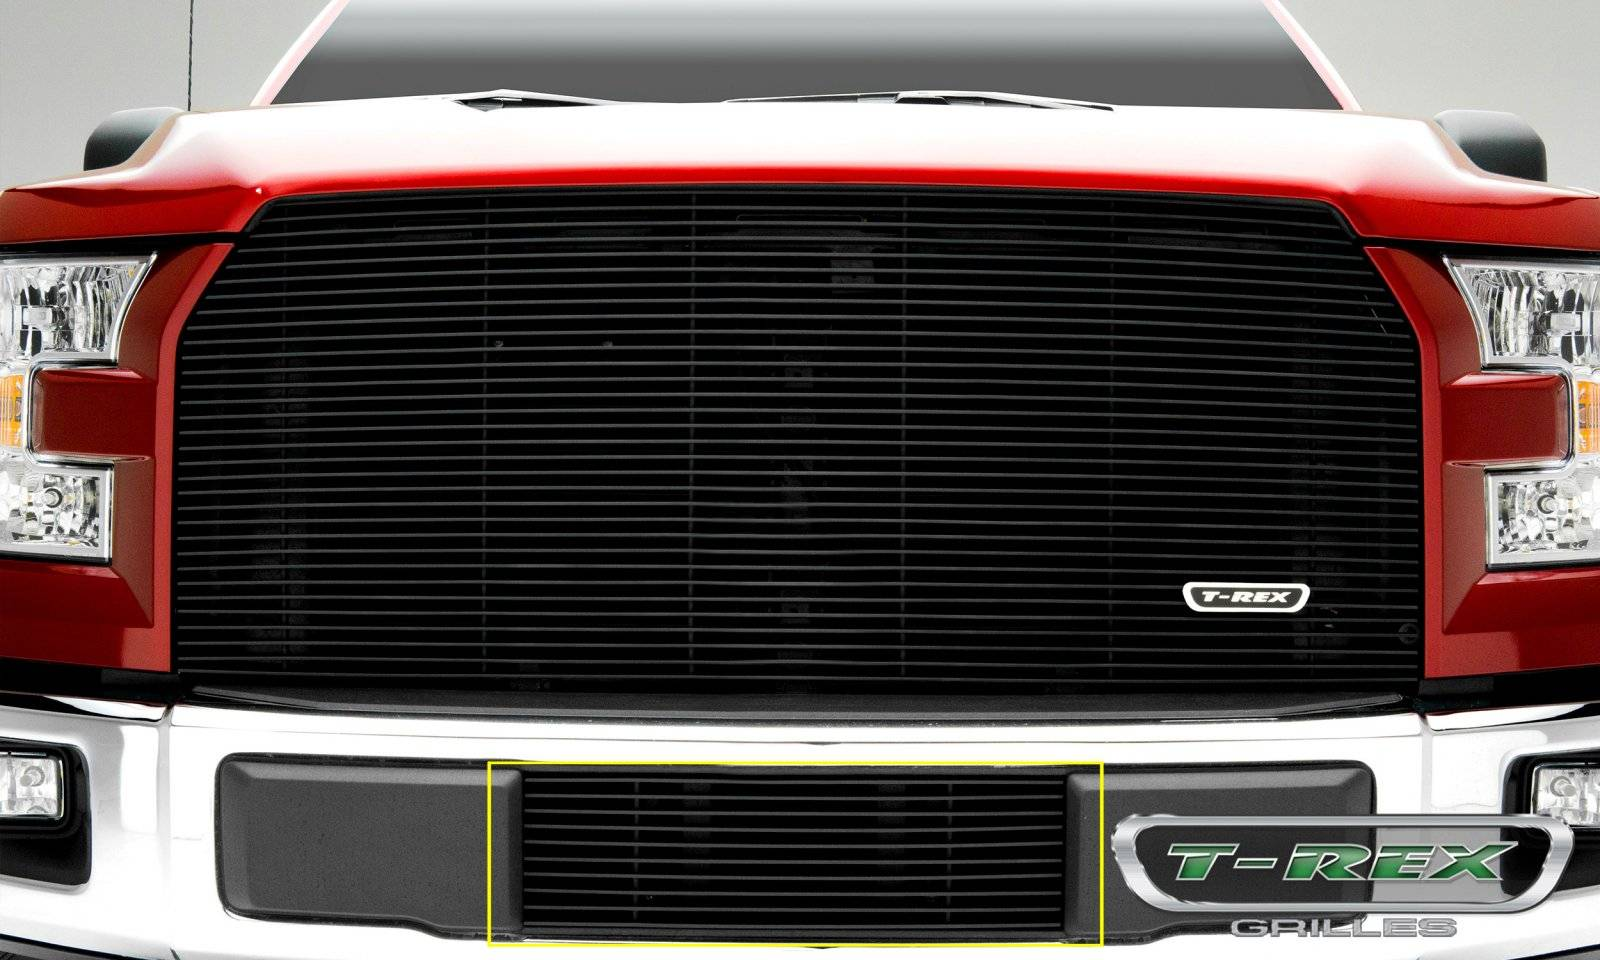 Ford F-150 - Billet Series - Bumper Grille with Black Powdercoat Finish - Pt # 25573B